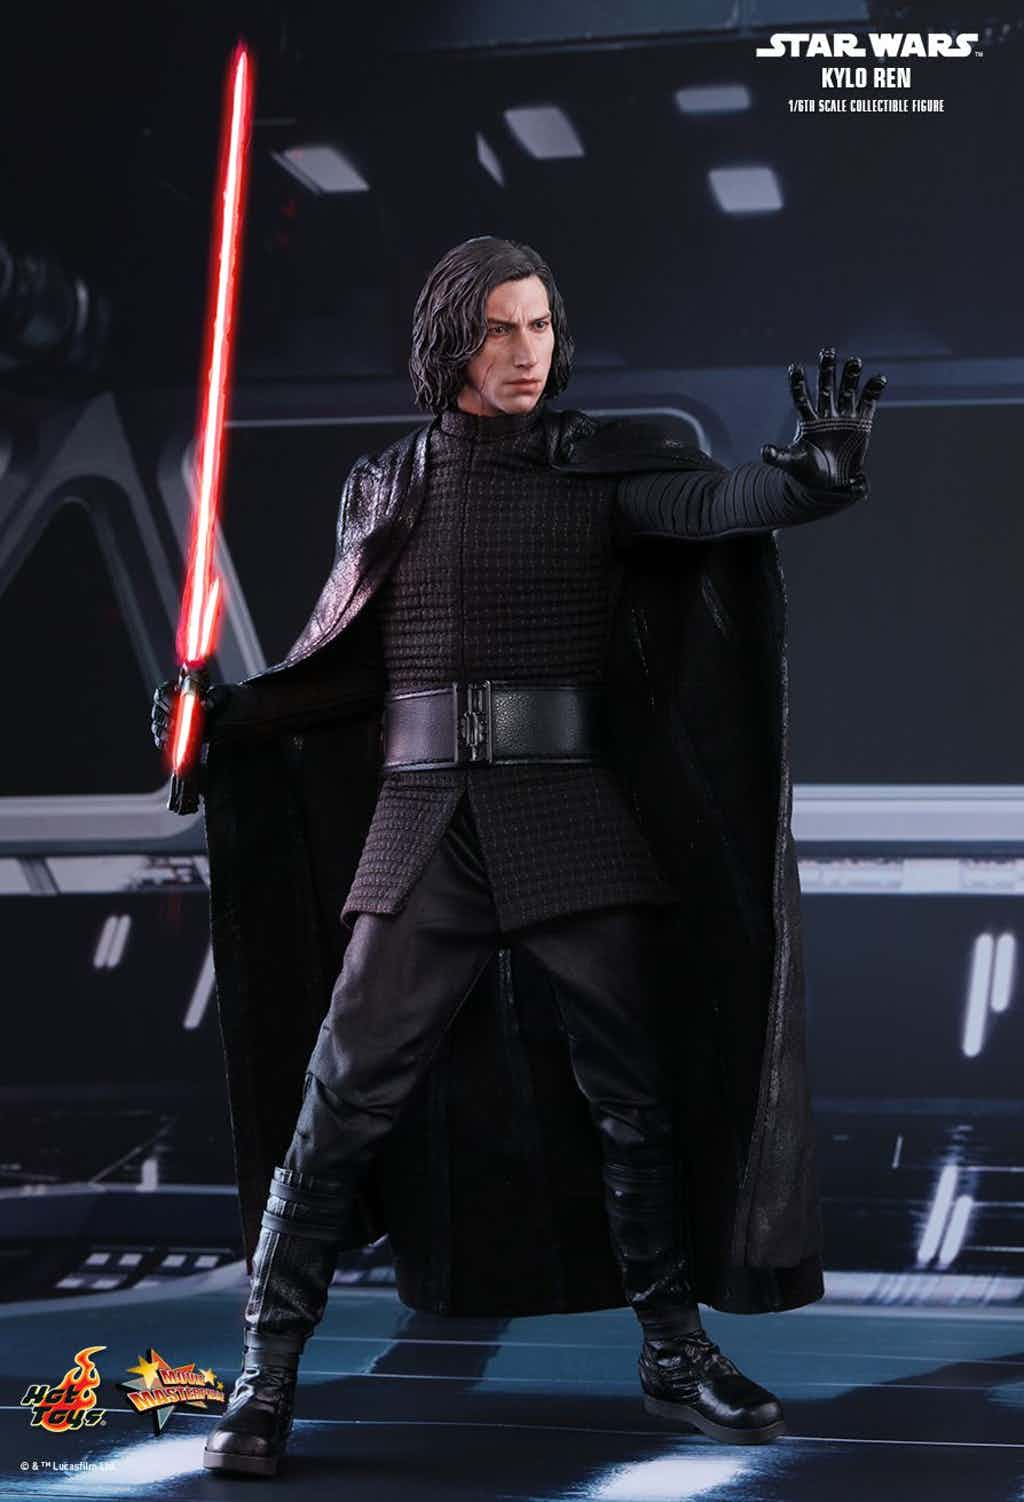 Battery Operated Ride On Toys >> The Last Jedi: Kylo Ren Hot Toys Figure Released